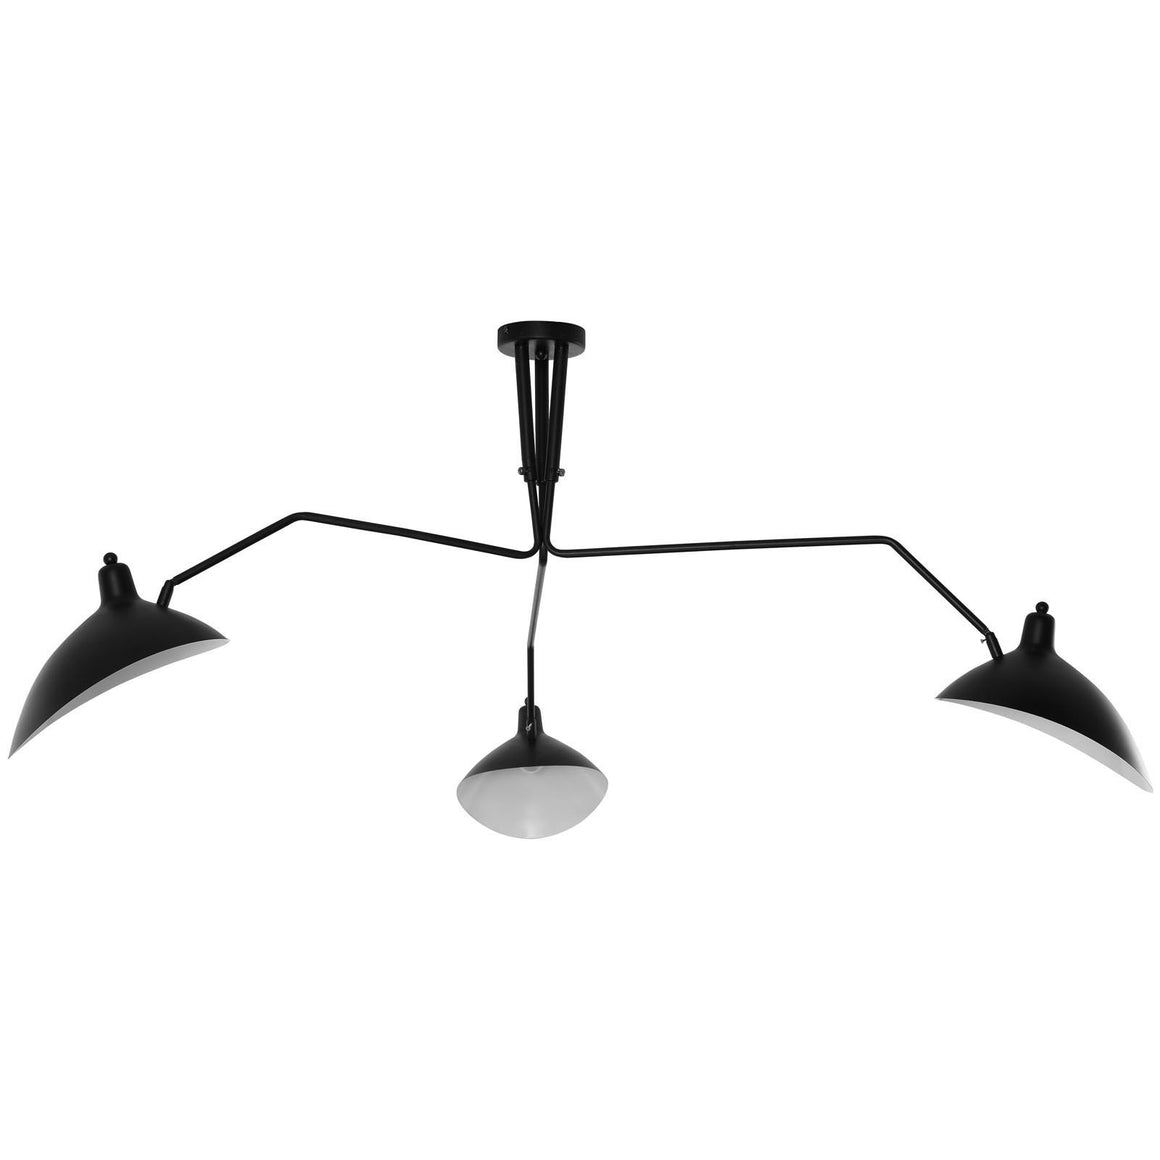 Serge Mouille Style Three Arm Spider Ceiling Fixture Lamps Free Shipping